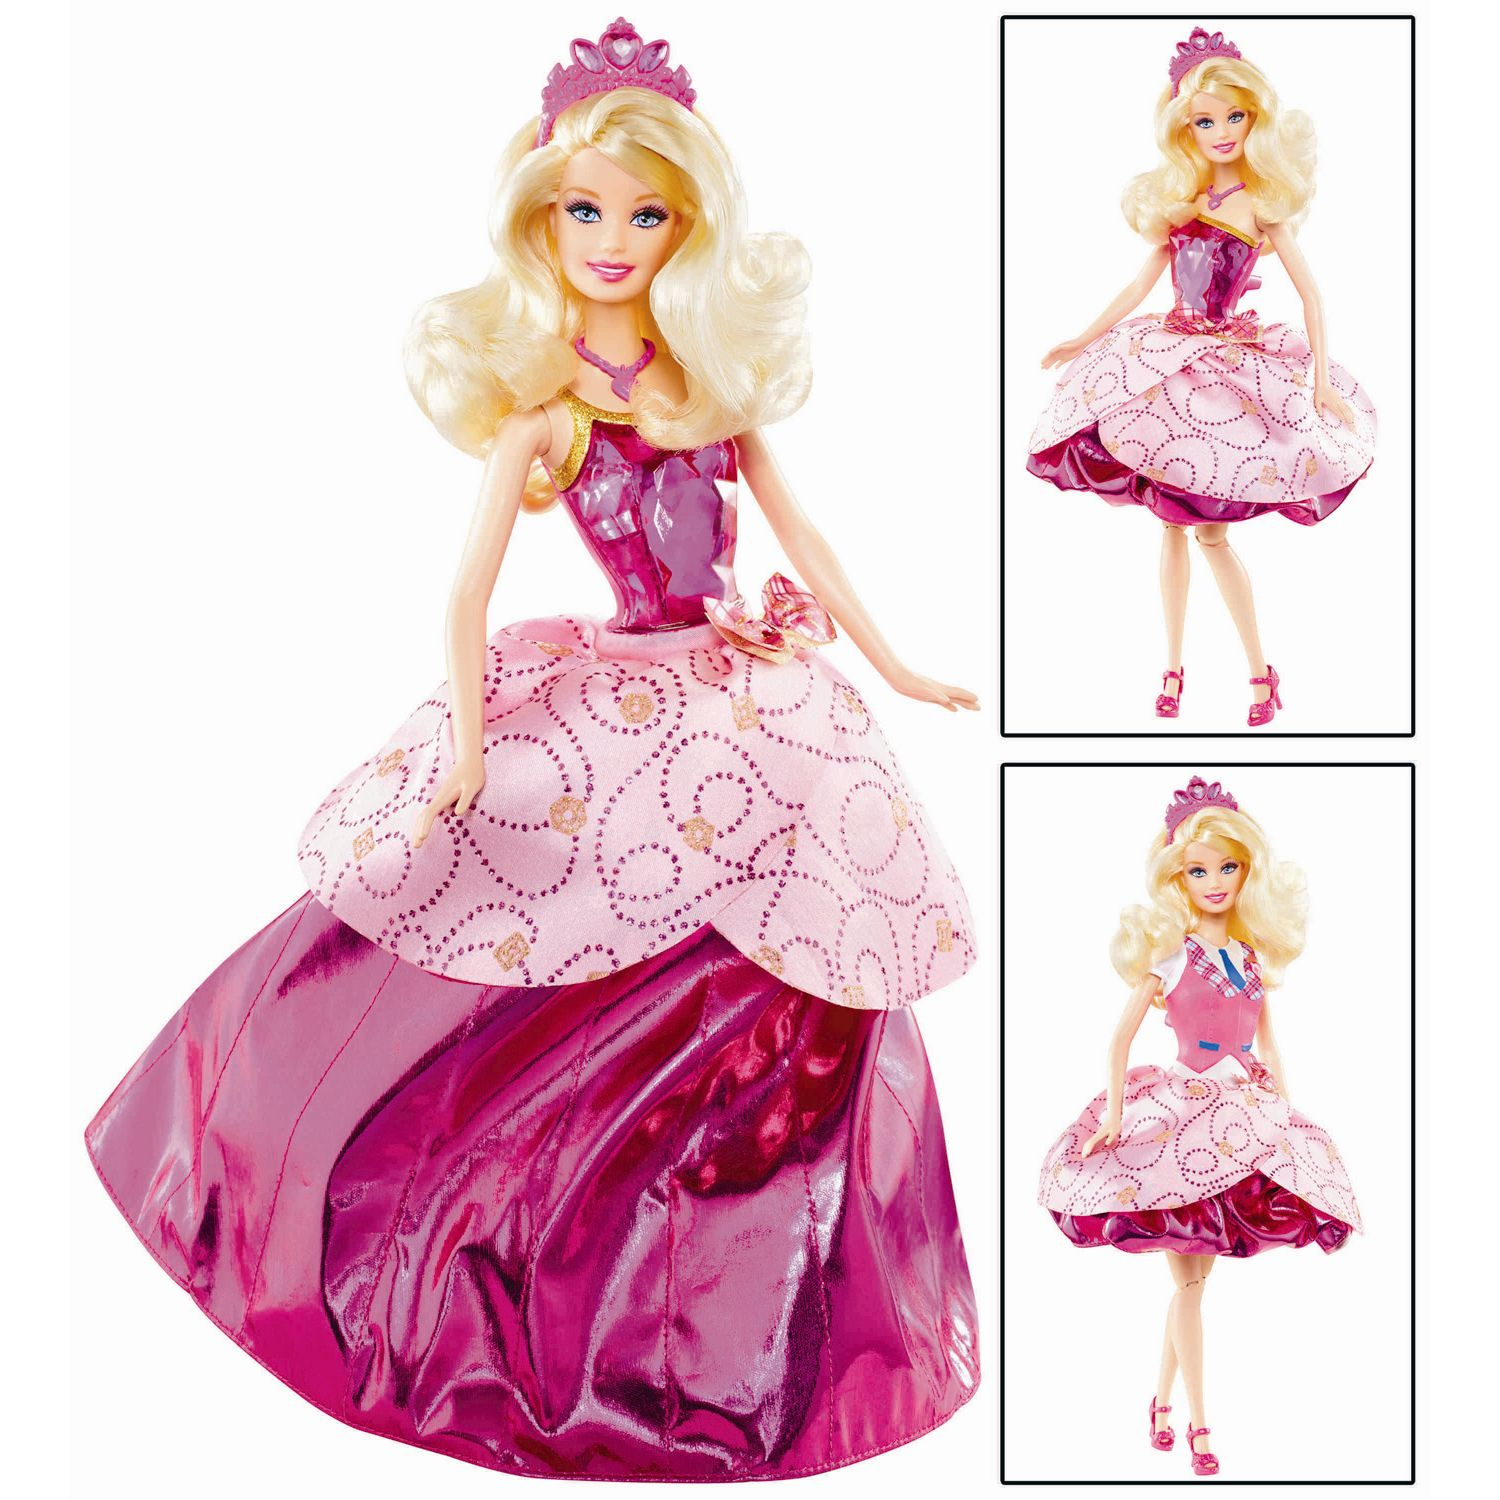 Barbie clipart free banner royalty free library Free Barbie Cliparts, Download Free Clip Art, Free Clip Art on ... banner royalty free library